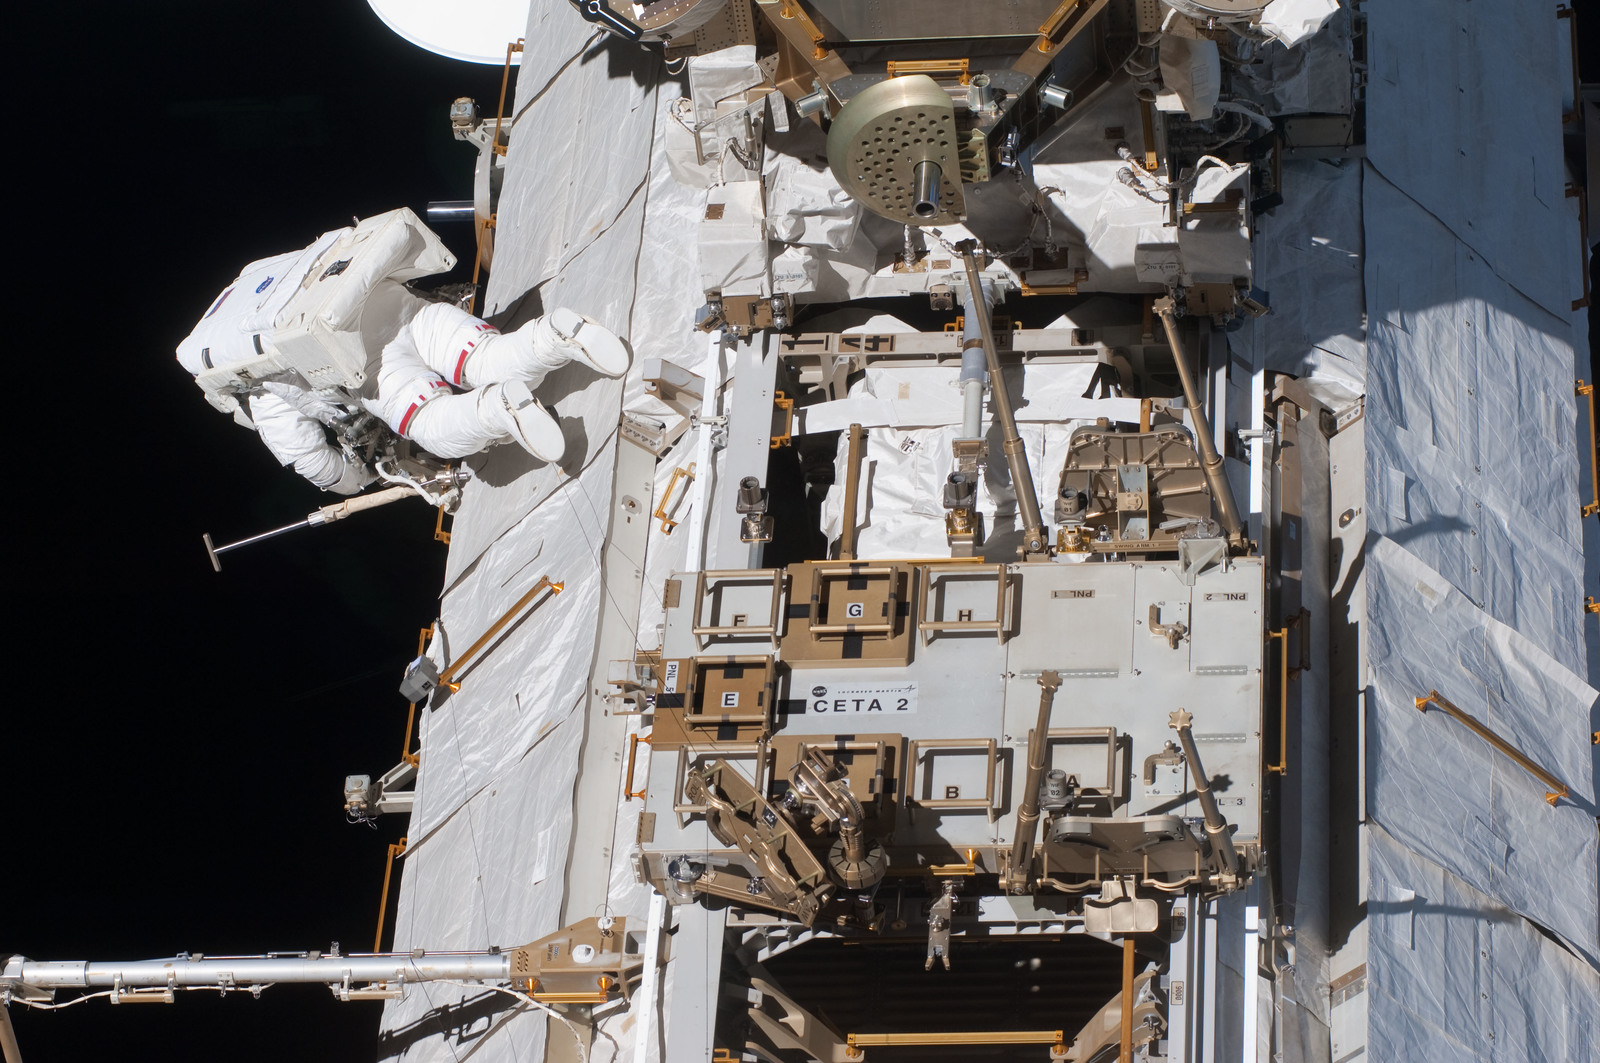 S127E007229 - STS-127 - Marshburn during EVA-2 on STS-127 / Expedition 20 Joint Operations